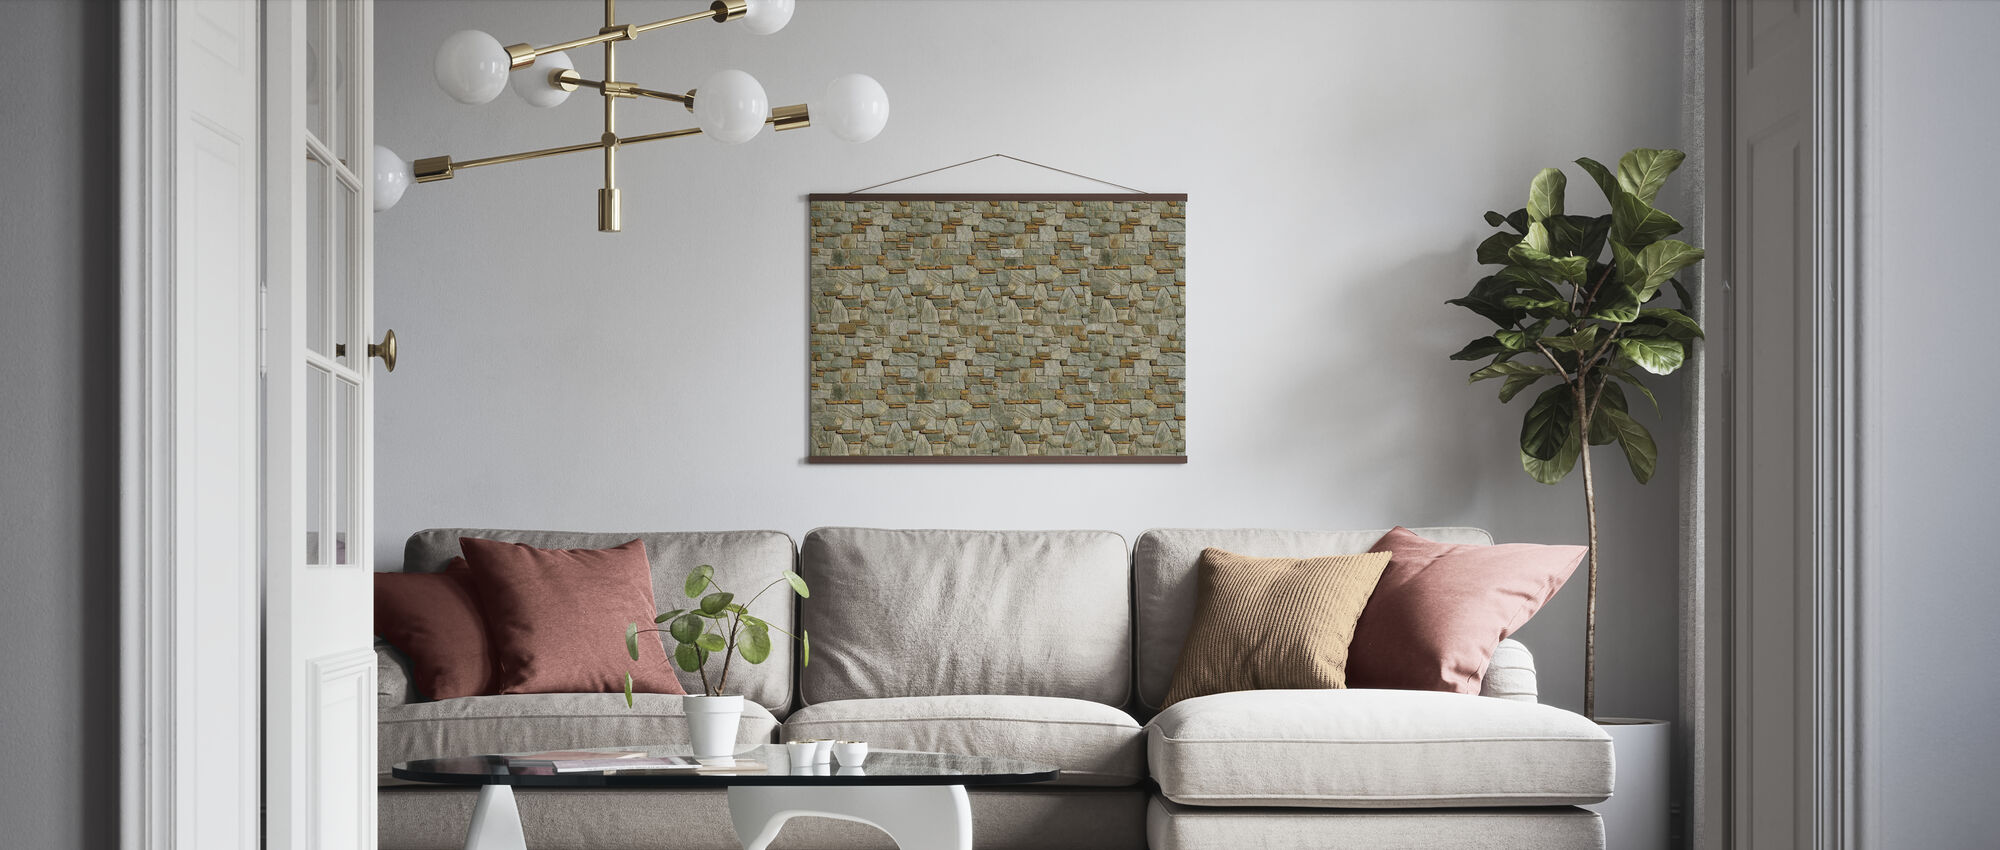 Decorative Stone Wall - Poster - Living Room